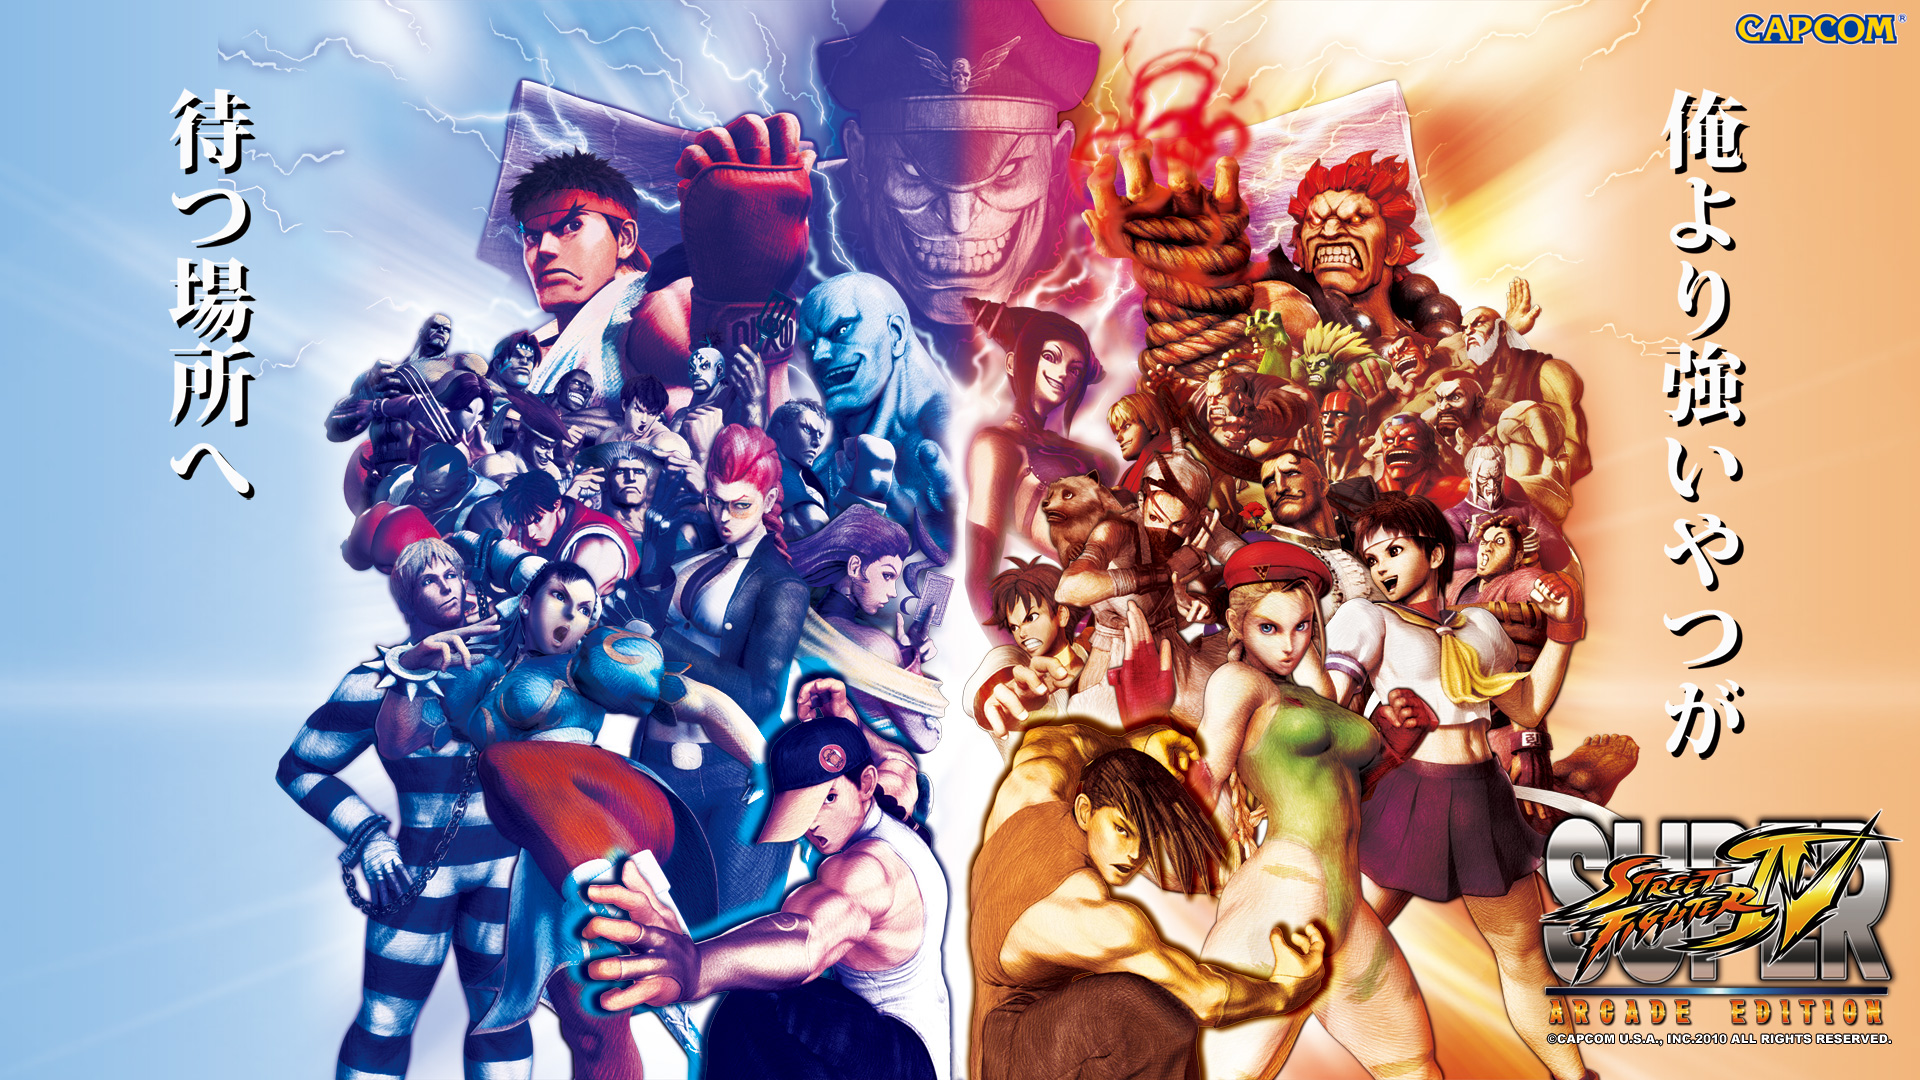 So many characters to choose from, so why does it always come back to just Ryu, Blanka & Dalsim?